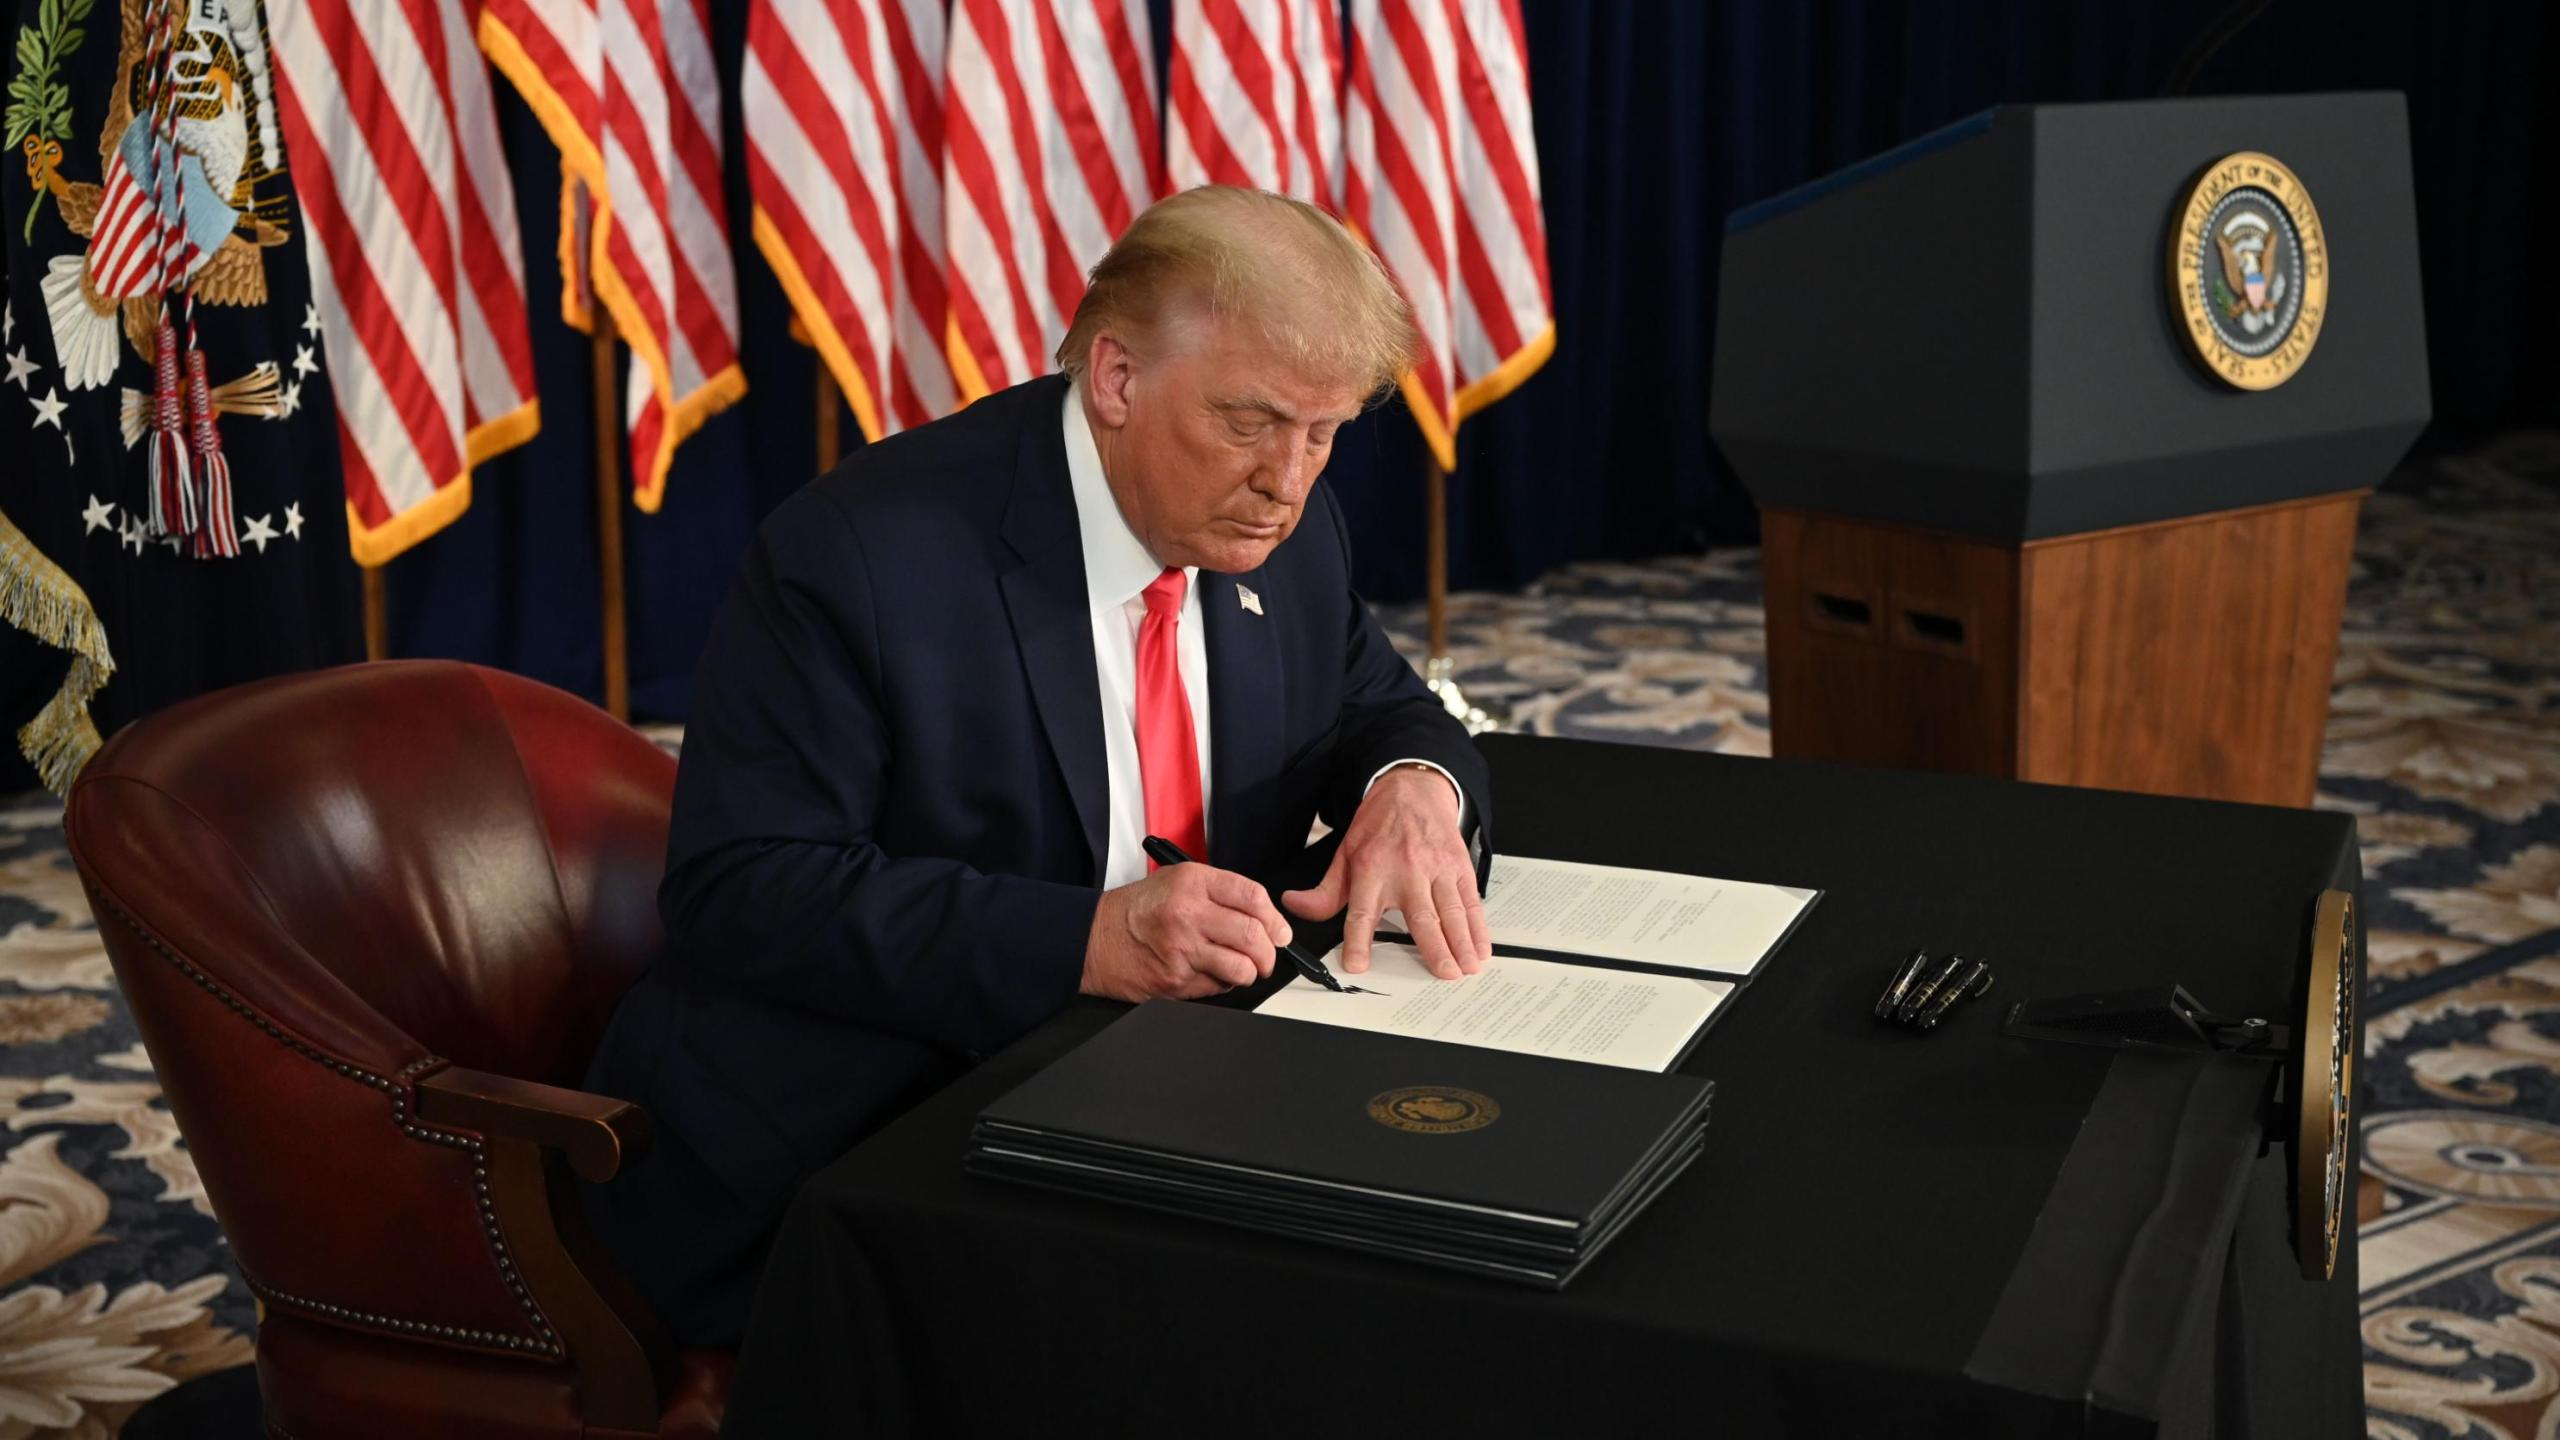 President Donald Trump signs executive orders extending coronavirus economic relief, during a news conference in Bedminster, New Jersey, on Aug. 8, 2020. (JIM WATSON/AFP via Getty Images)